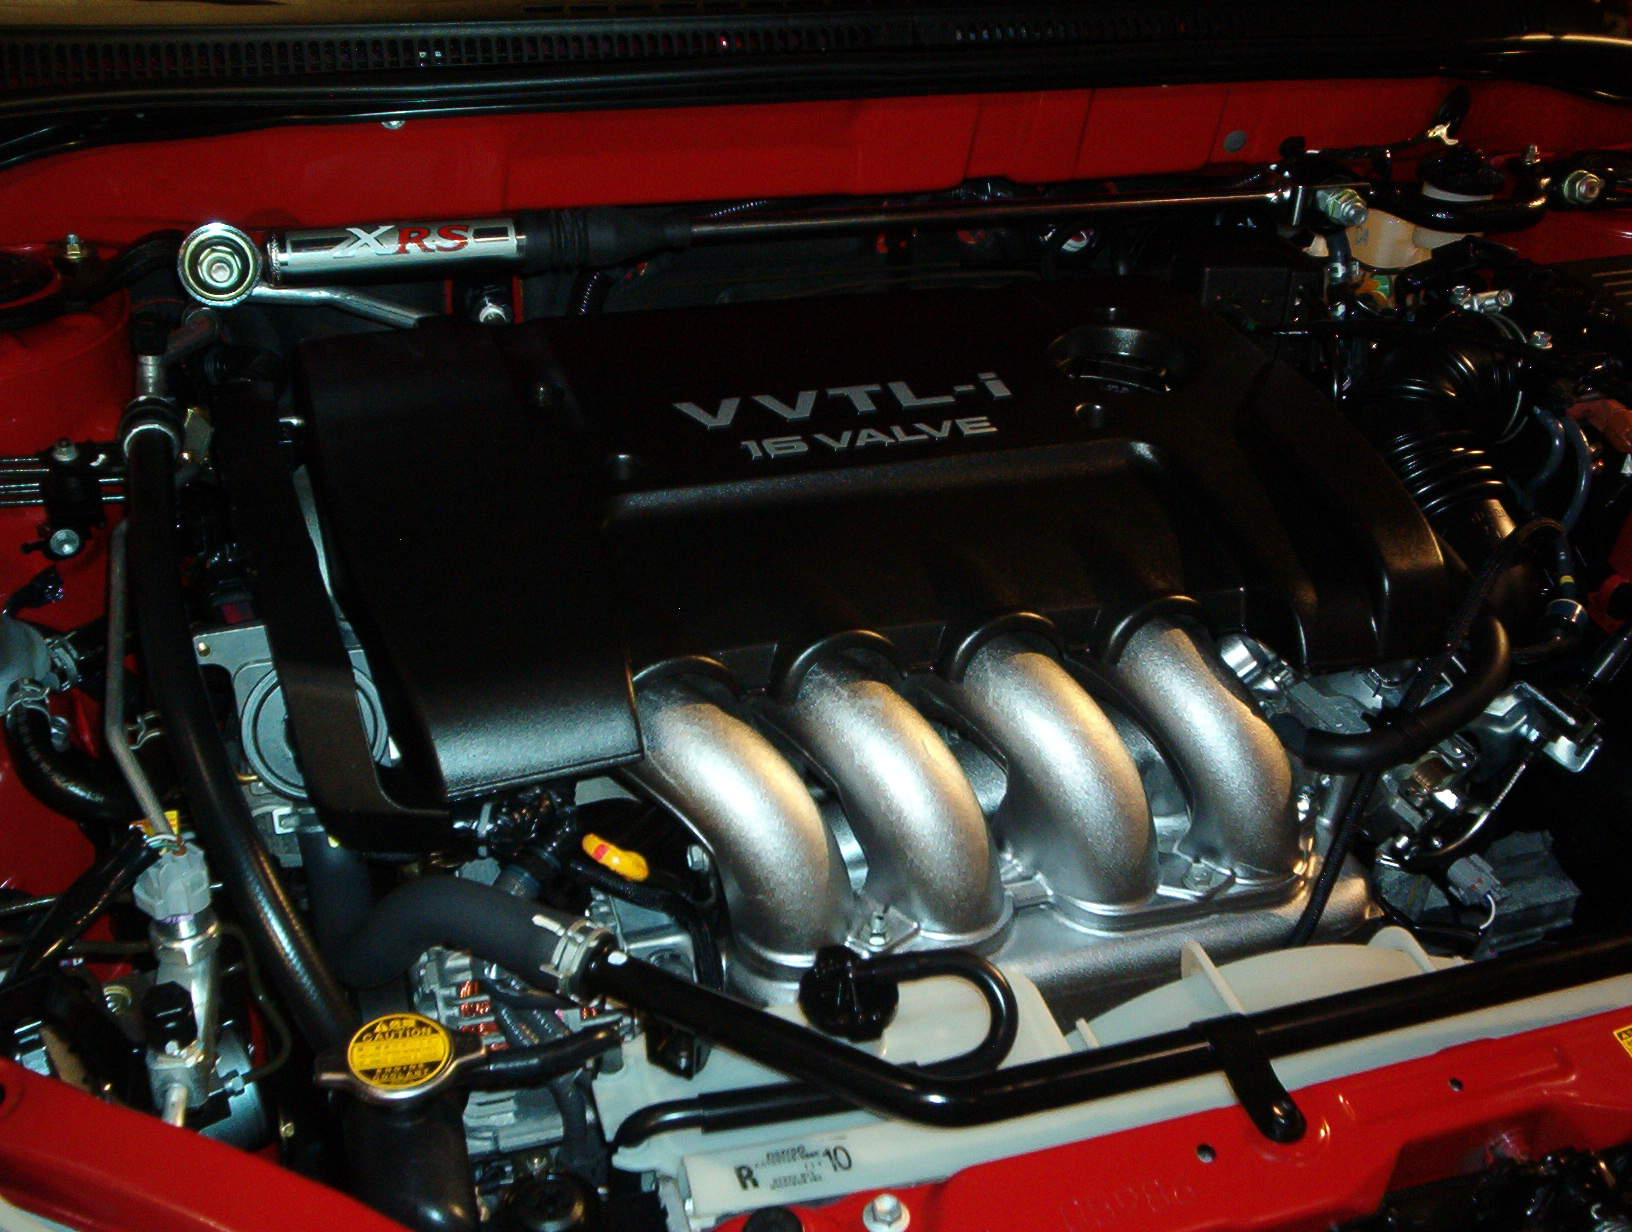 The 2ZZ-GE engine, the first to feature VVTL-i